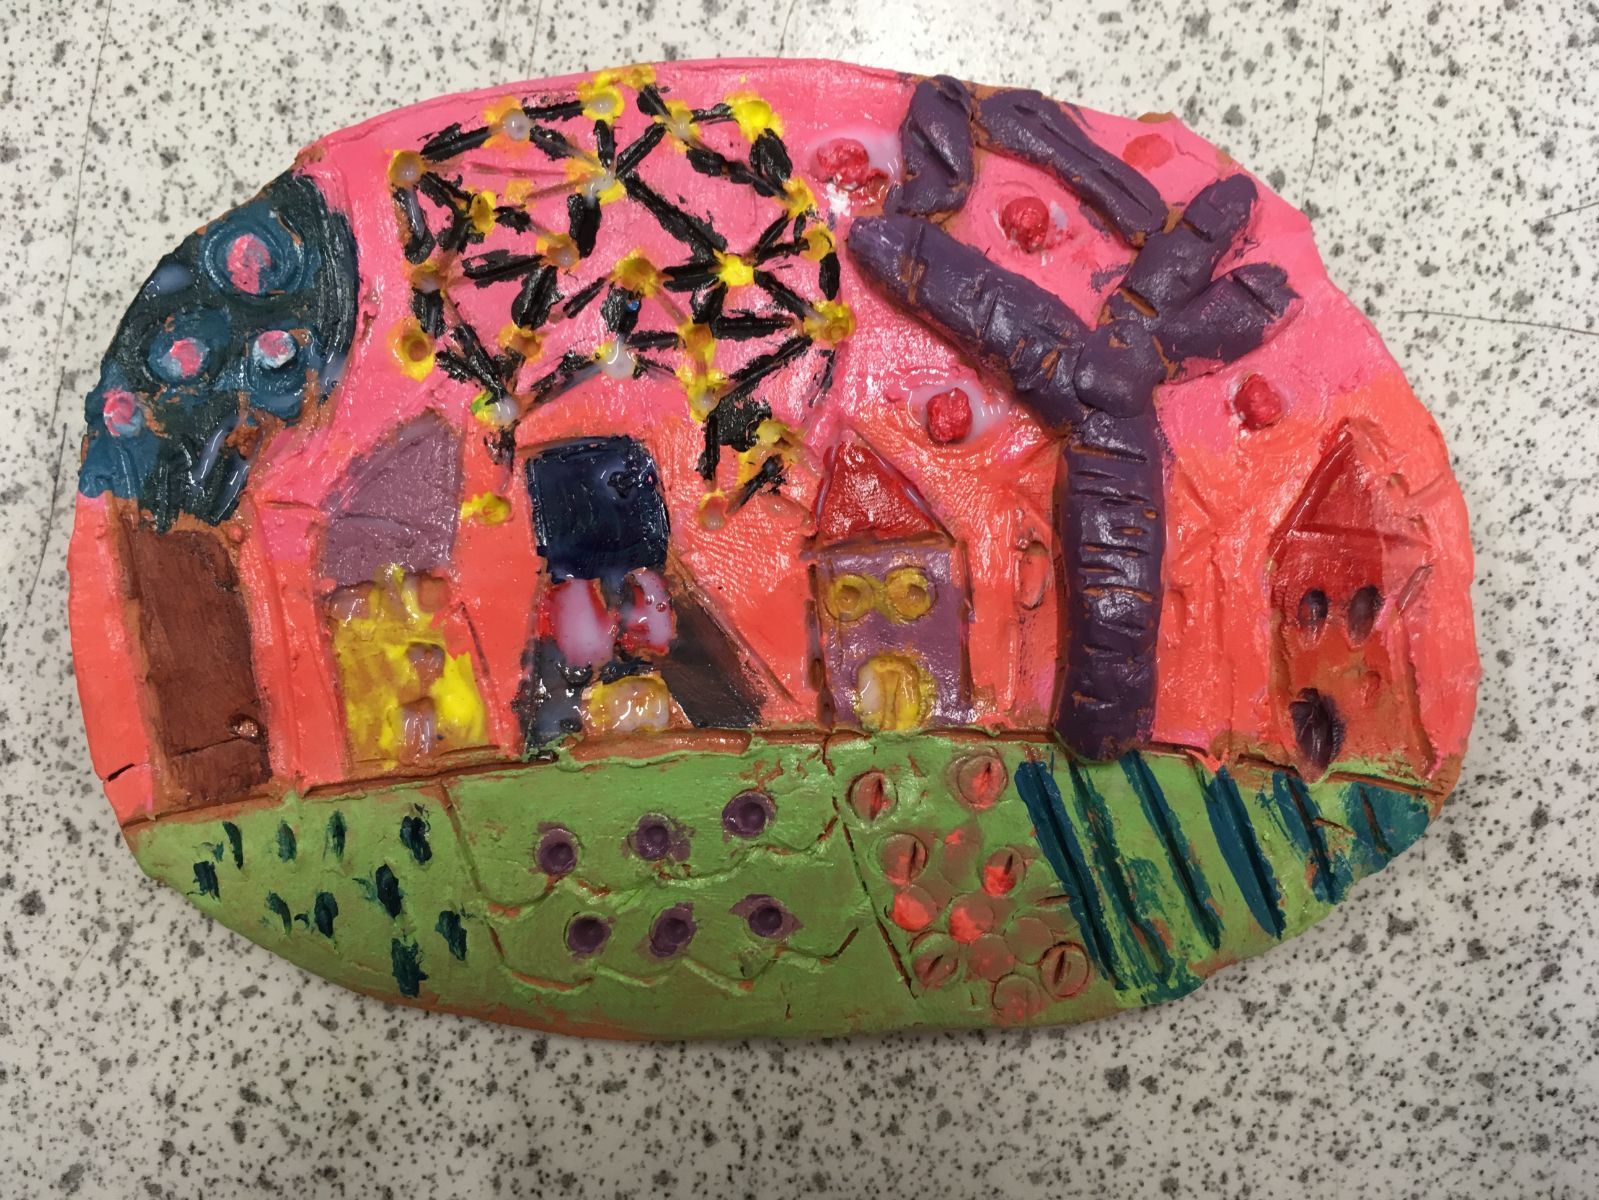 Making a clay tile and learning to draw a sphere: Hundertwasser